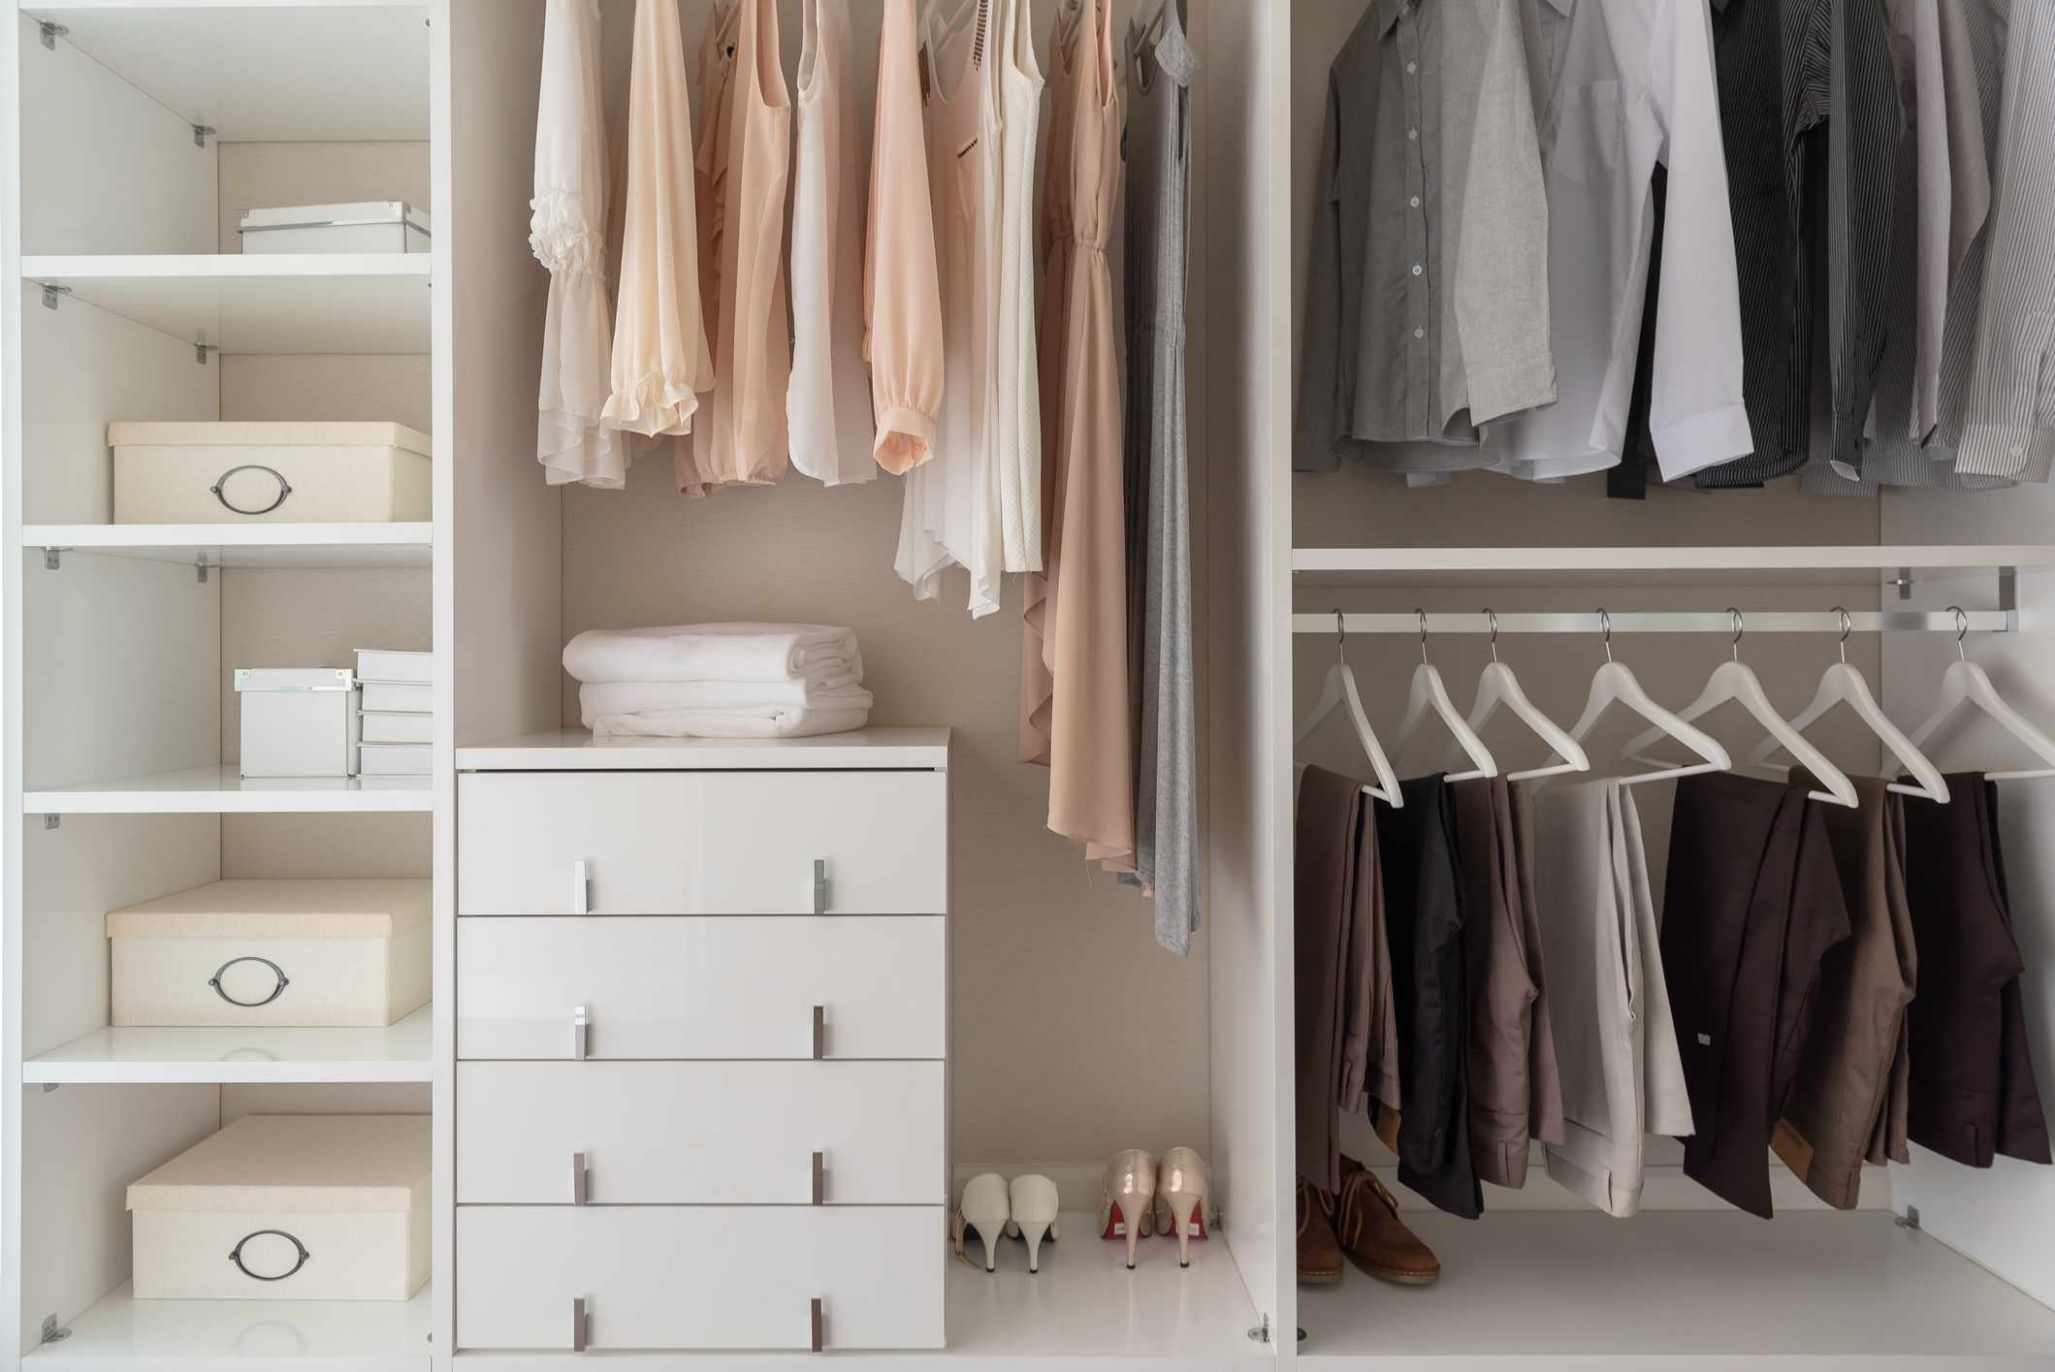 The Ultimate Guide to Organizing Your Closet - closet ideas meaning